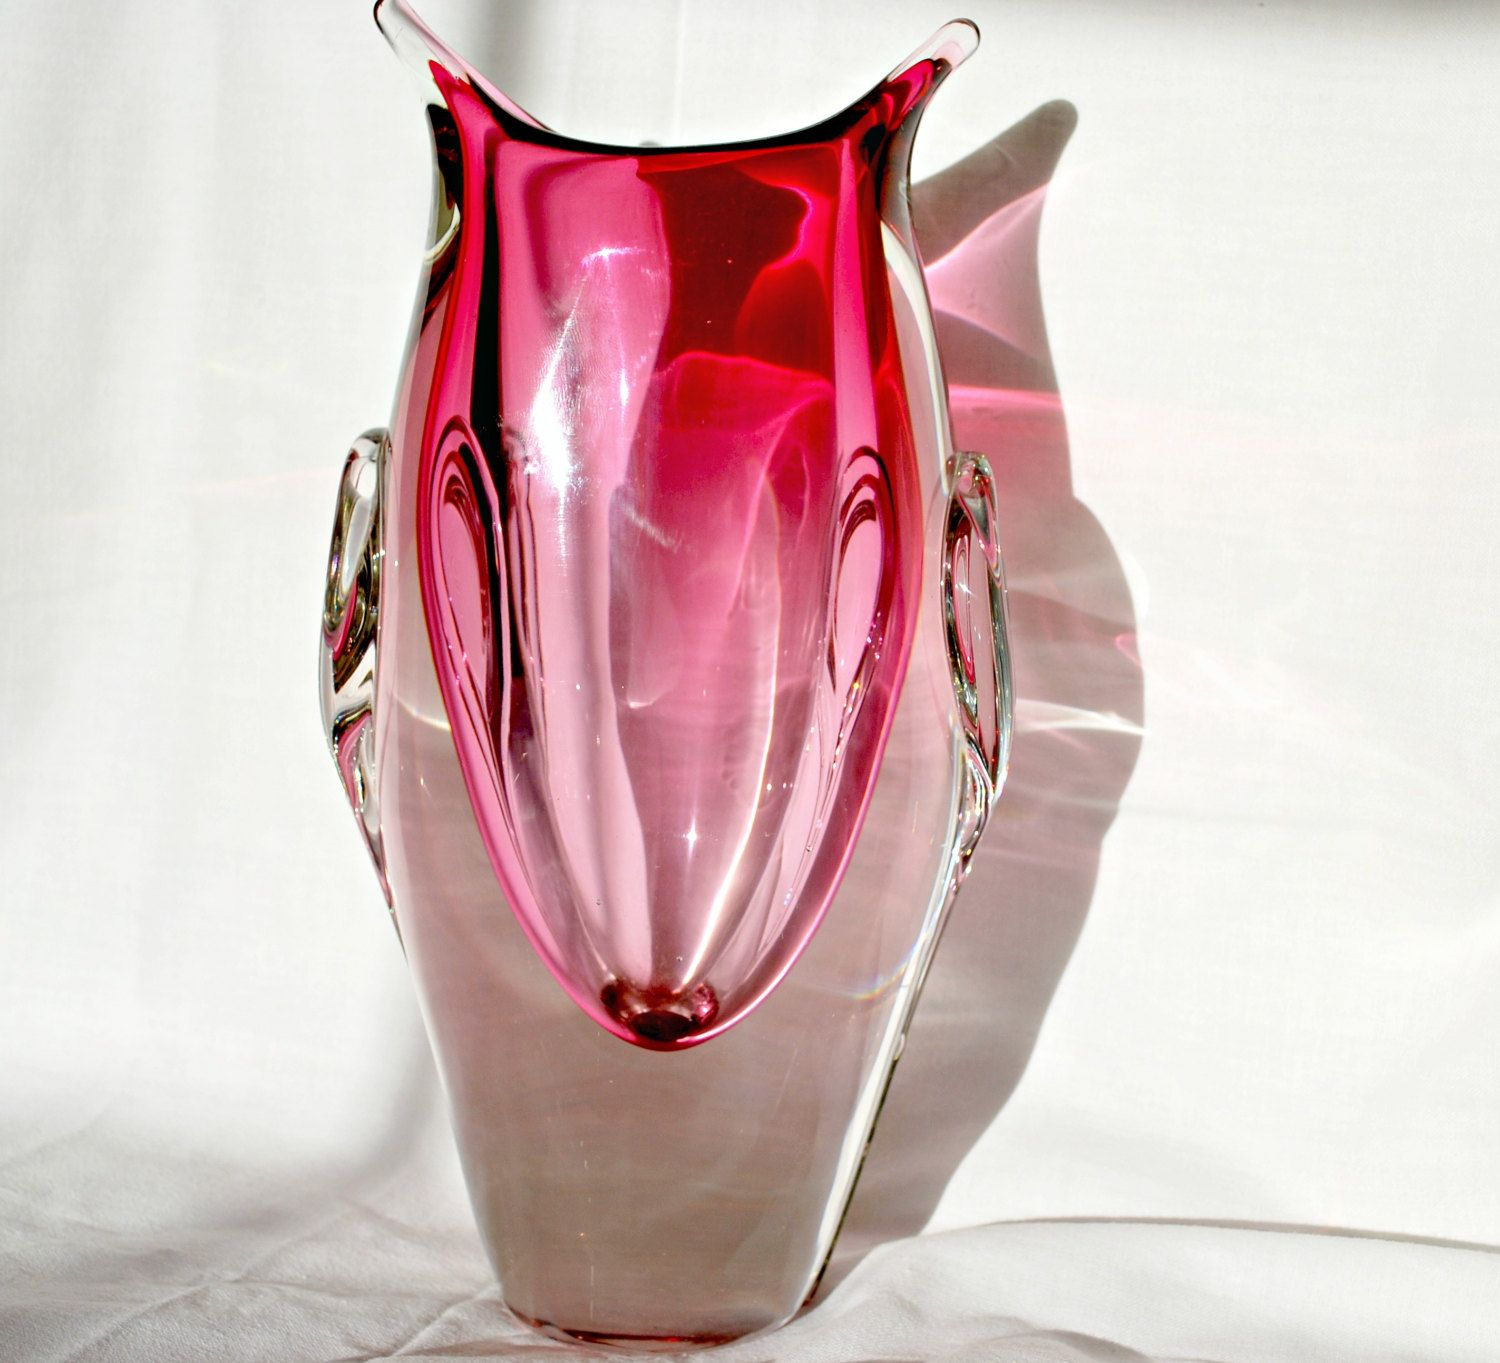 Pink glass vase chalet lorainne canada blown bubble glass vase pink glass vase chalet lorainne canada blown bubble glass vase pinned by pin4etsy reviewsmspy